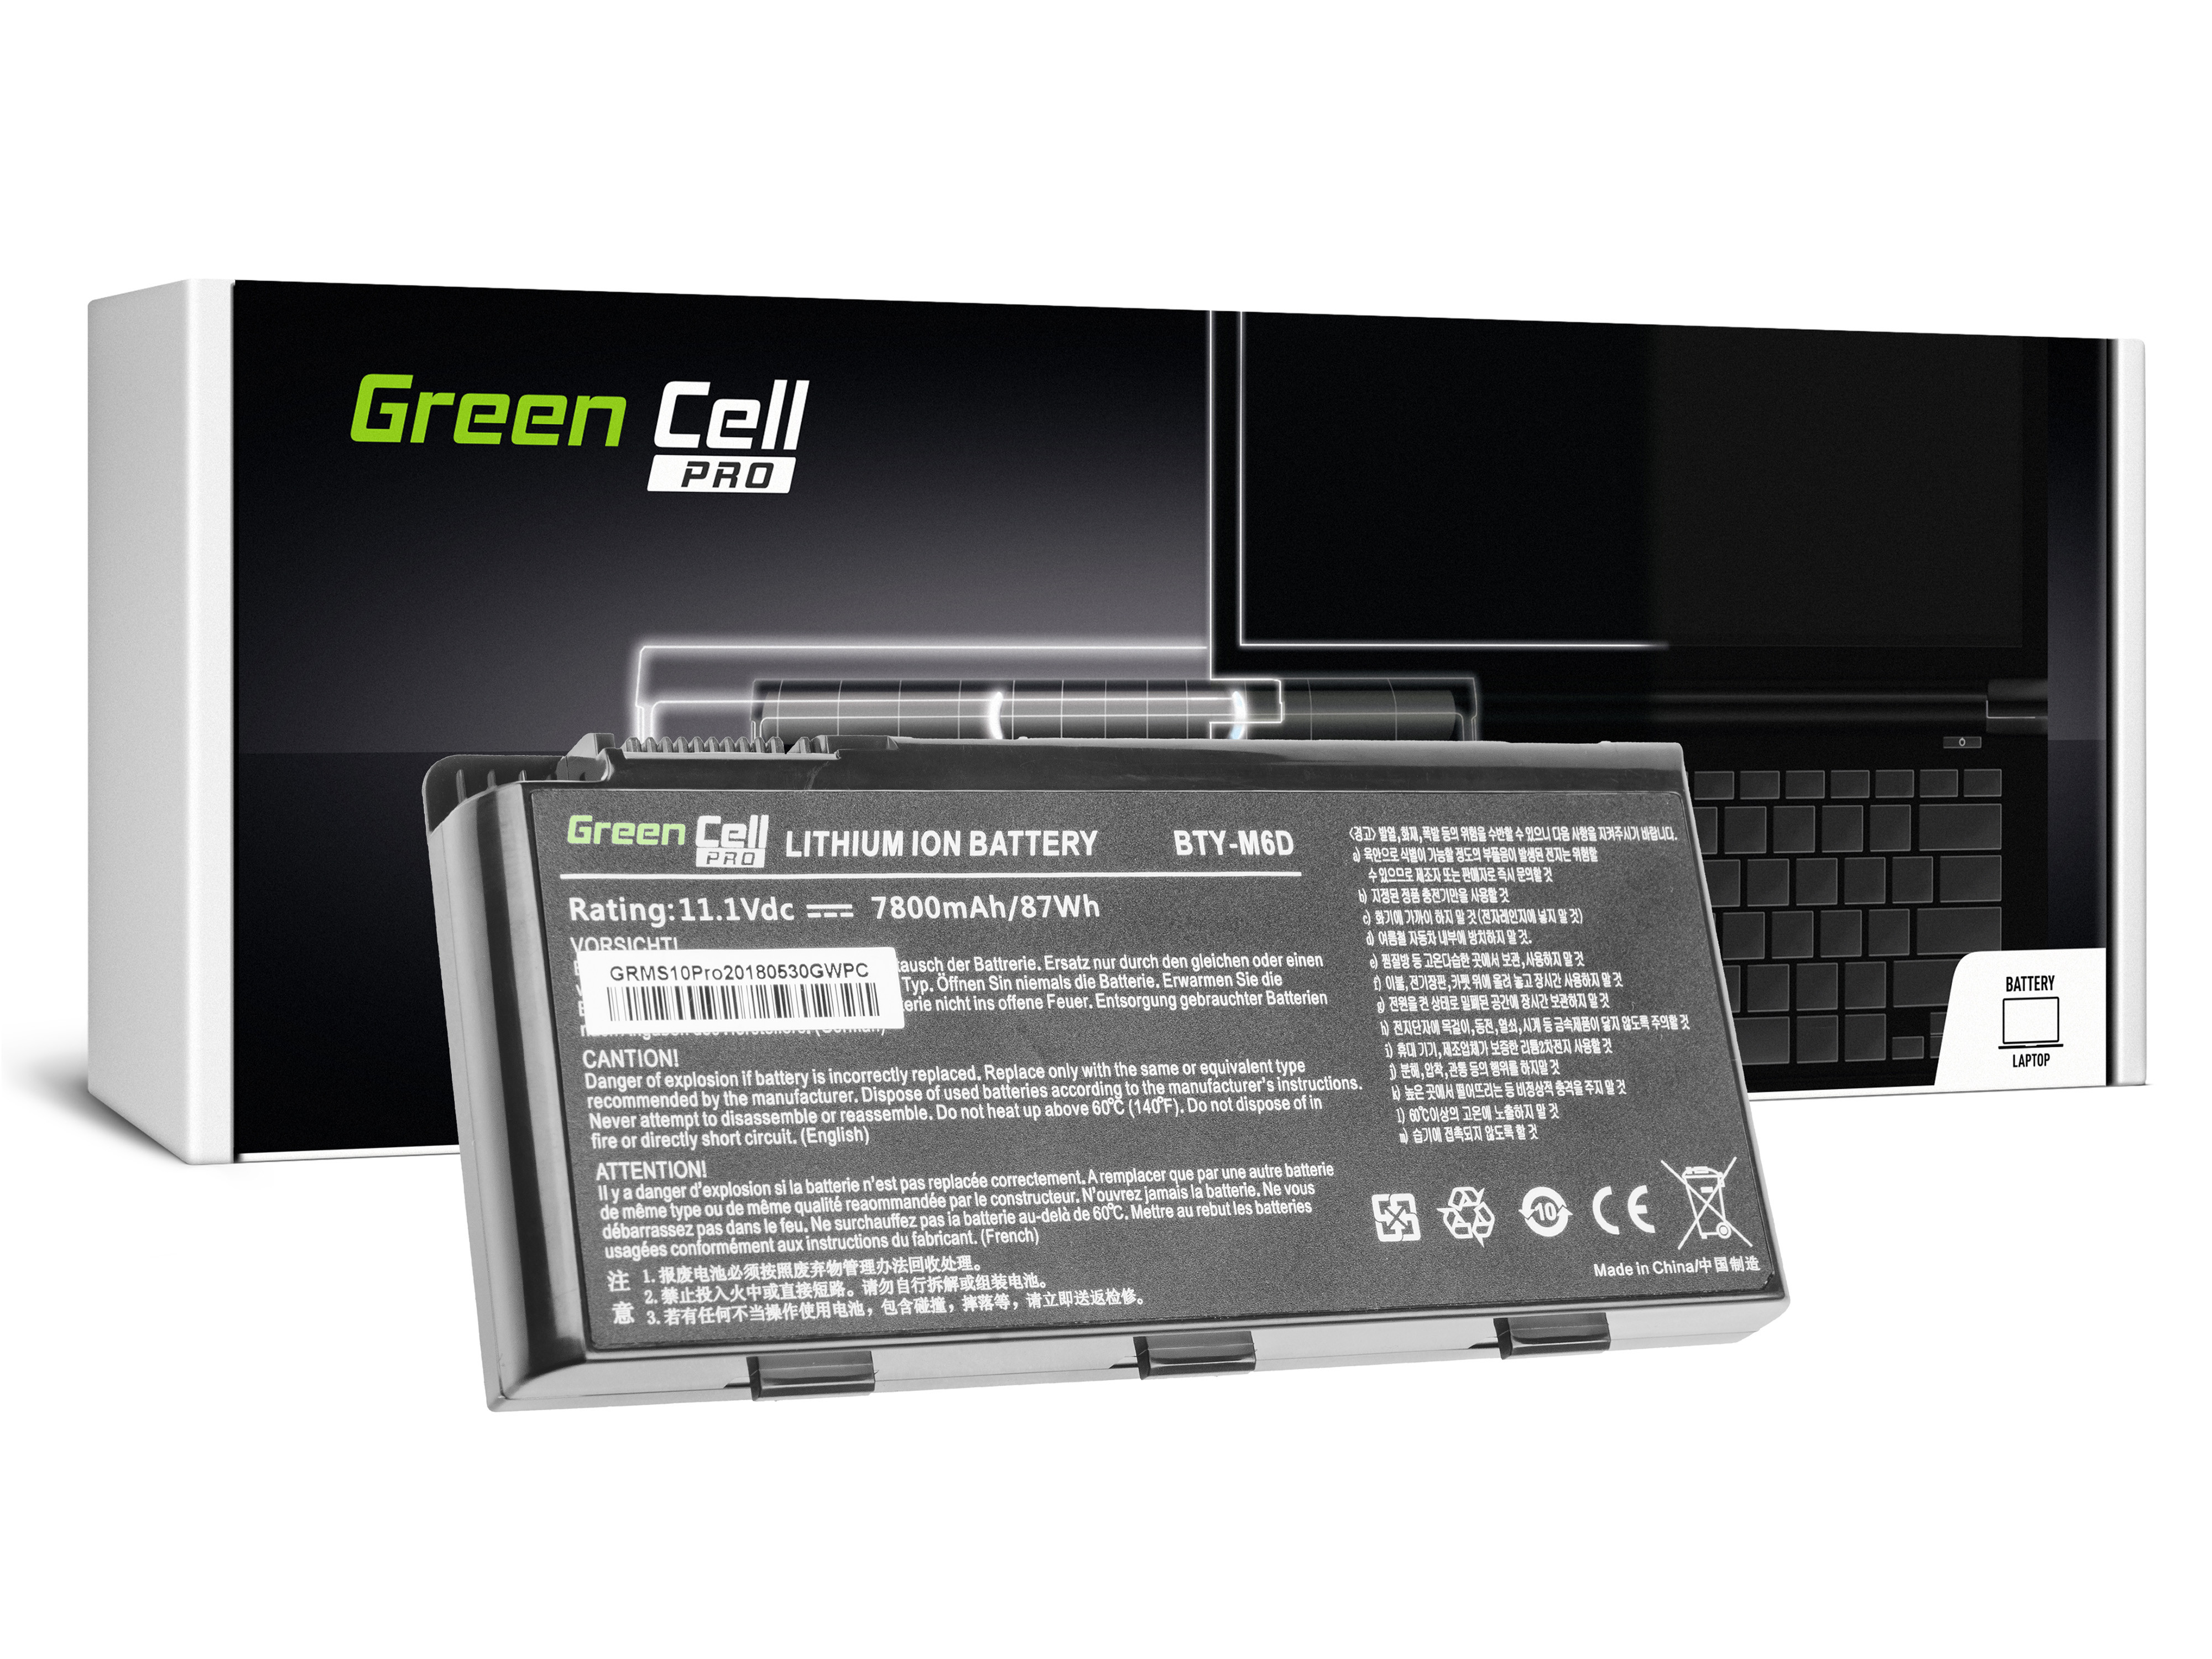 Green Cell MS10PRO Baterie MSI BTY-M6D do MSI GT60 GT70 GT660 GT680 GT683 GT780 GT783 GX660 GX680 GX780 7800mAh Li-ion - neoriginální